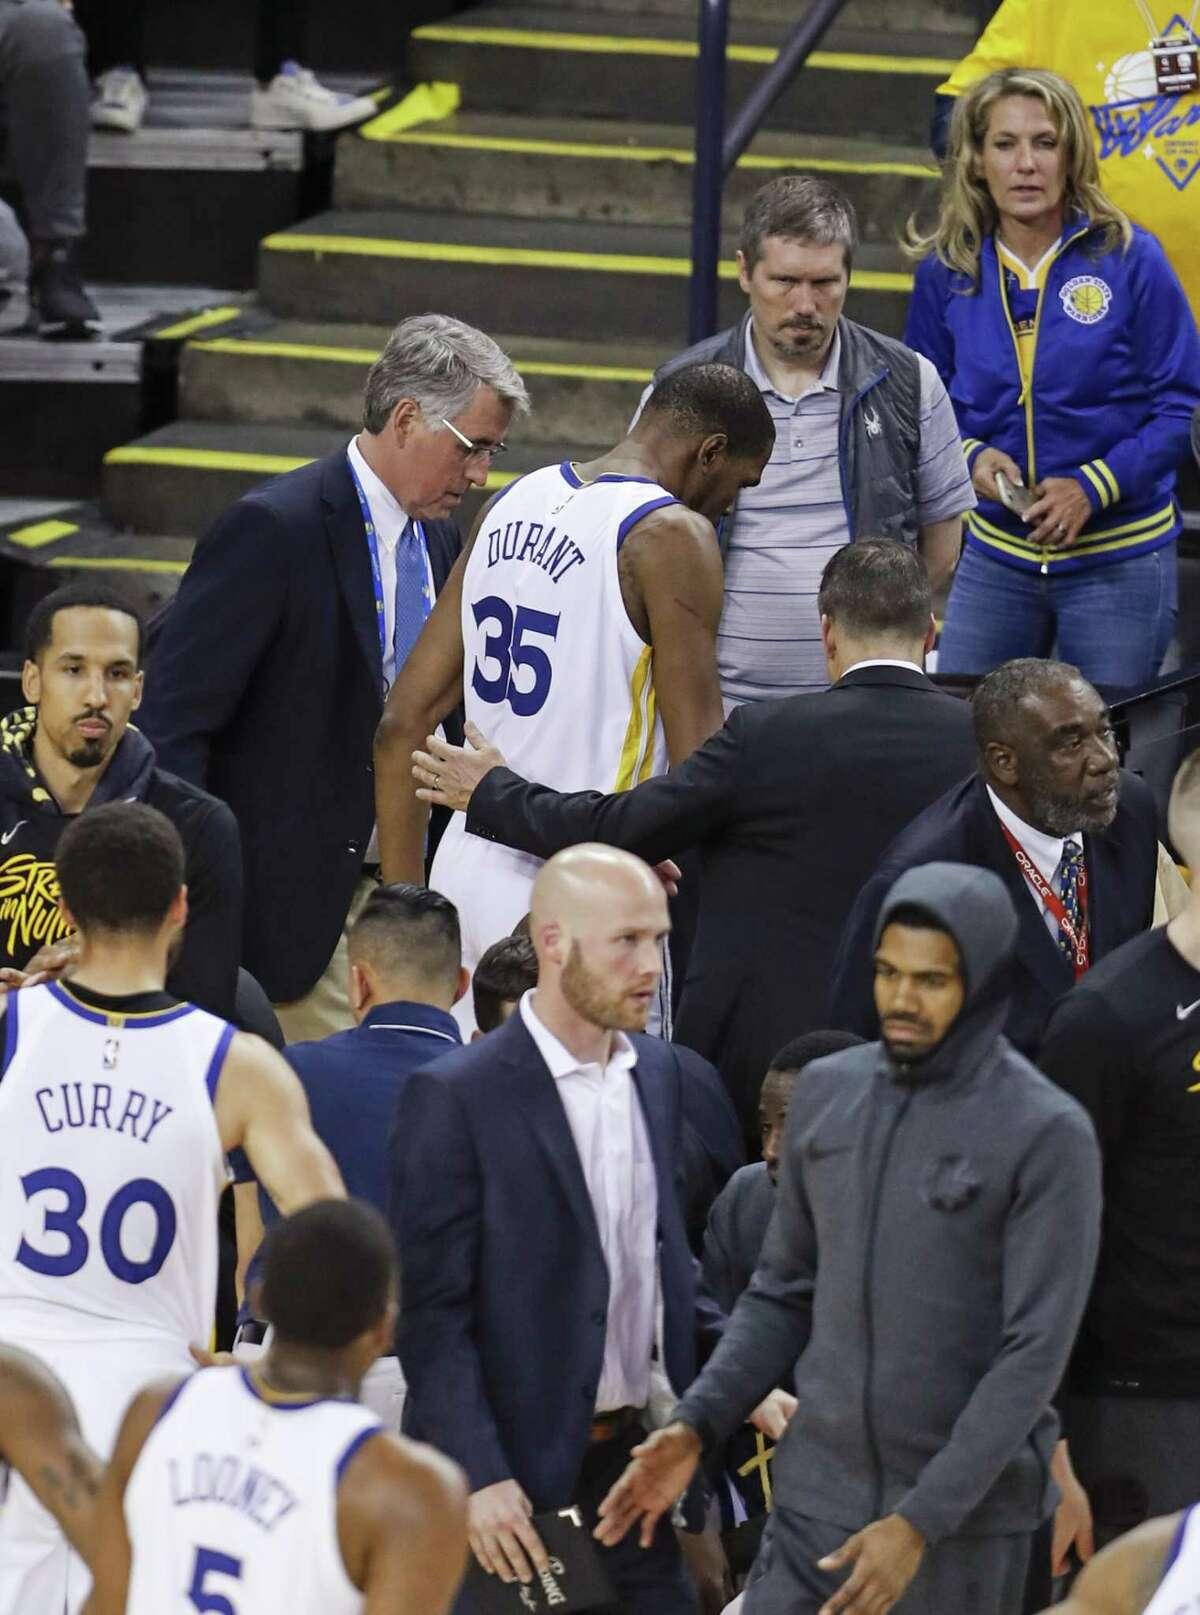 Golden State Warriors Kevin Durant heads to the locker room in the third quarter during game 5 of the Western Conference Semifinals between the Golden State Warriors and the Houston Rockets at Oracle Arena on Wednesday, May 8, 2019 in Oakland, Calif.